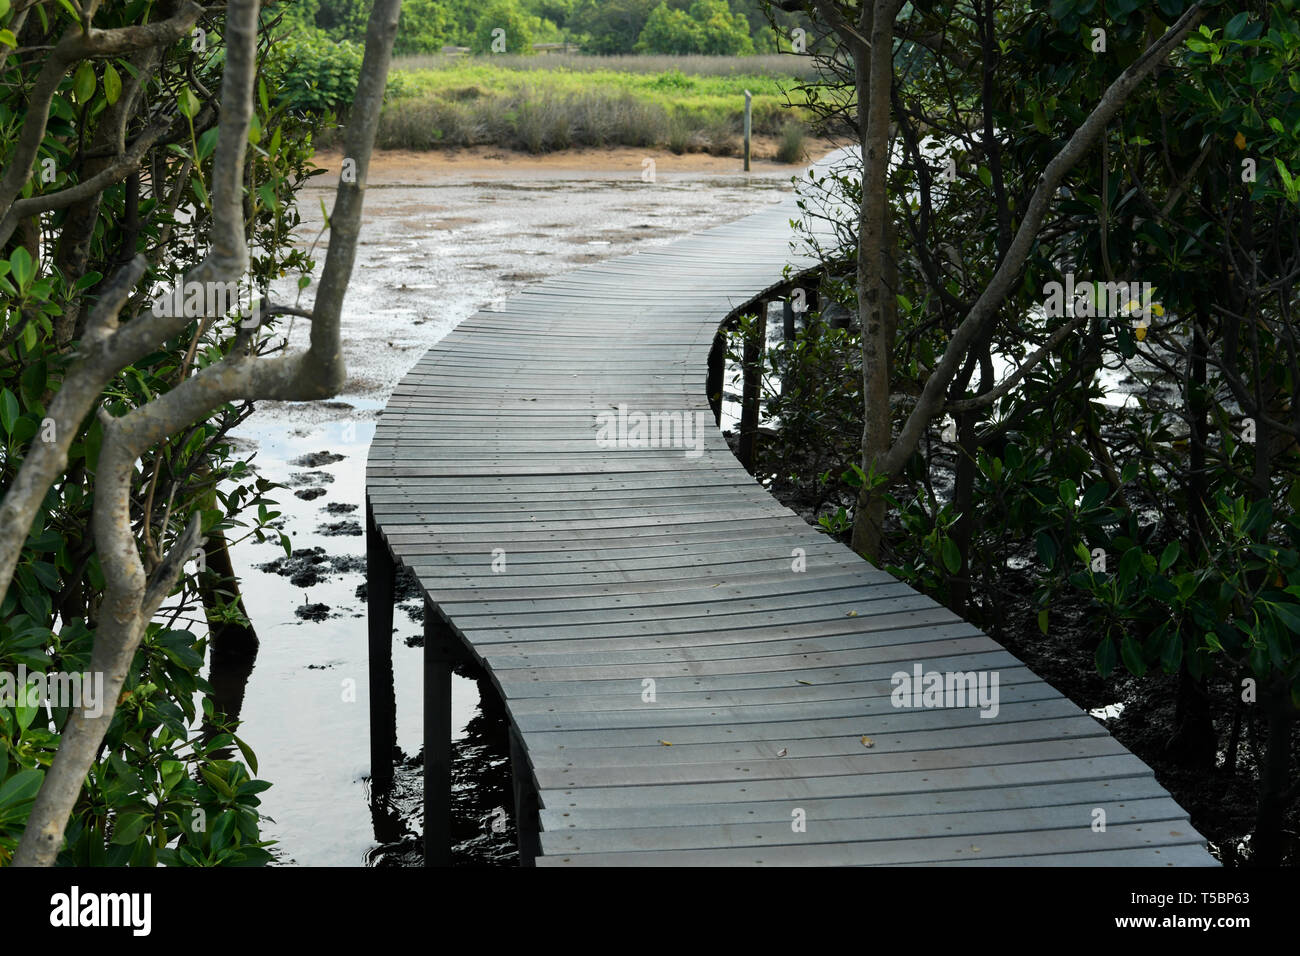 Durban, KwaZulu-Natal, South Africa, backgrounds, path in mangrove swamp of Umgeni river nature reserve estuary, landscape - Stock Image